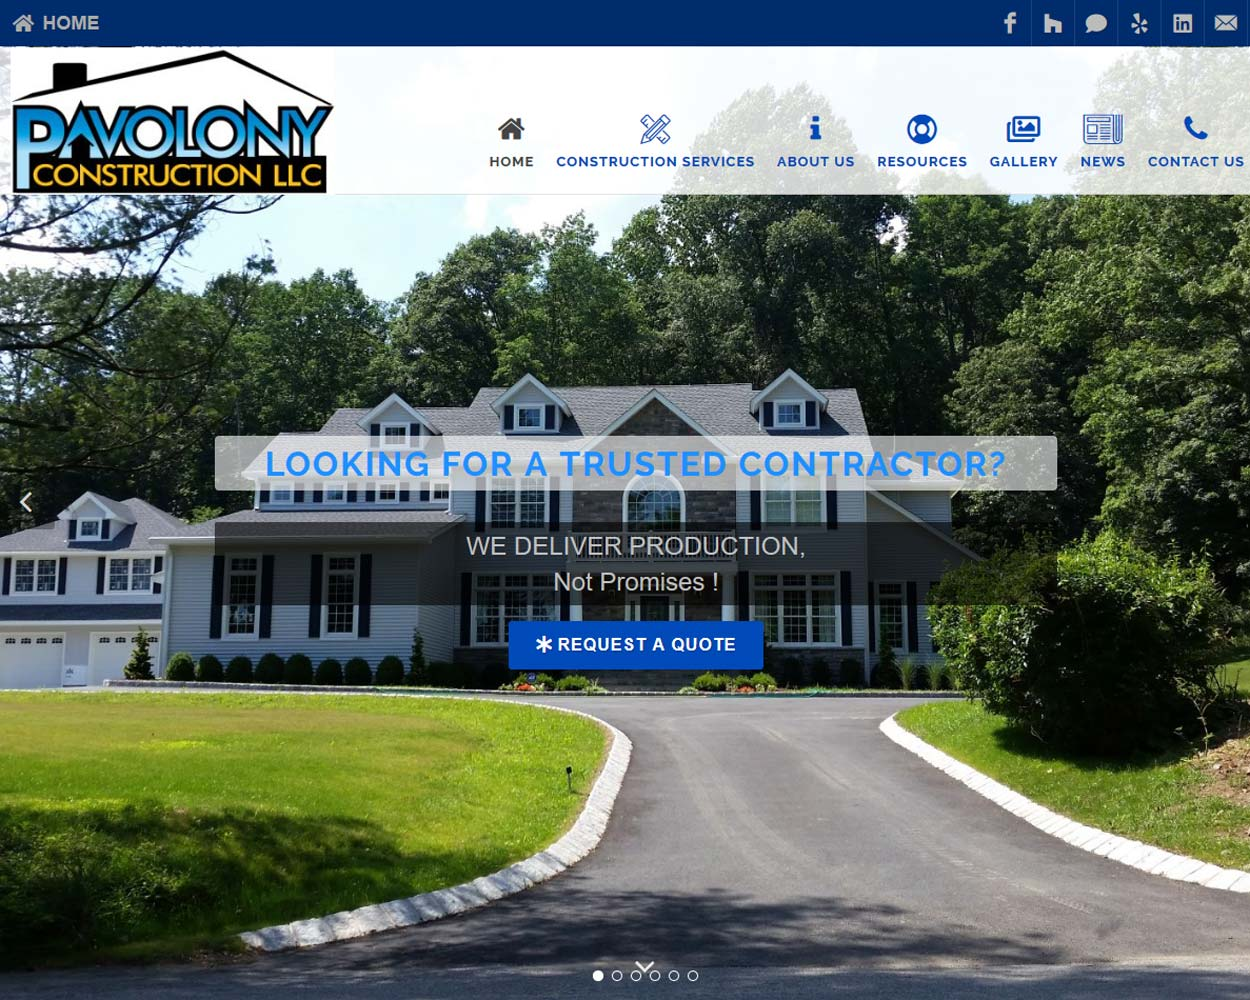 Pavolony Construction Lake Hopatcong NJ